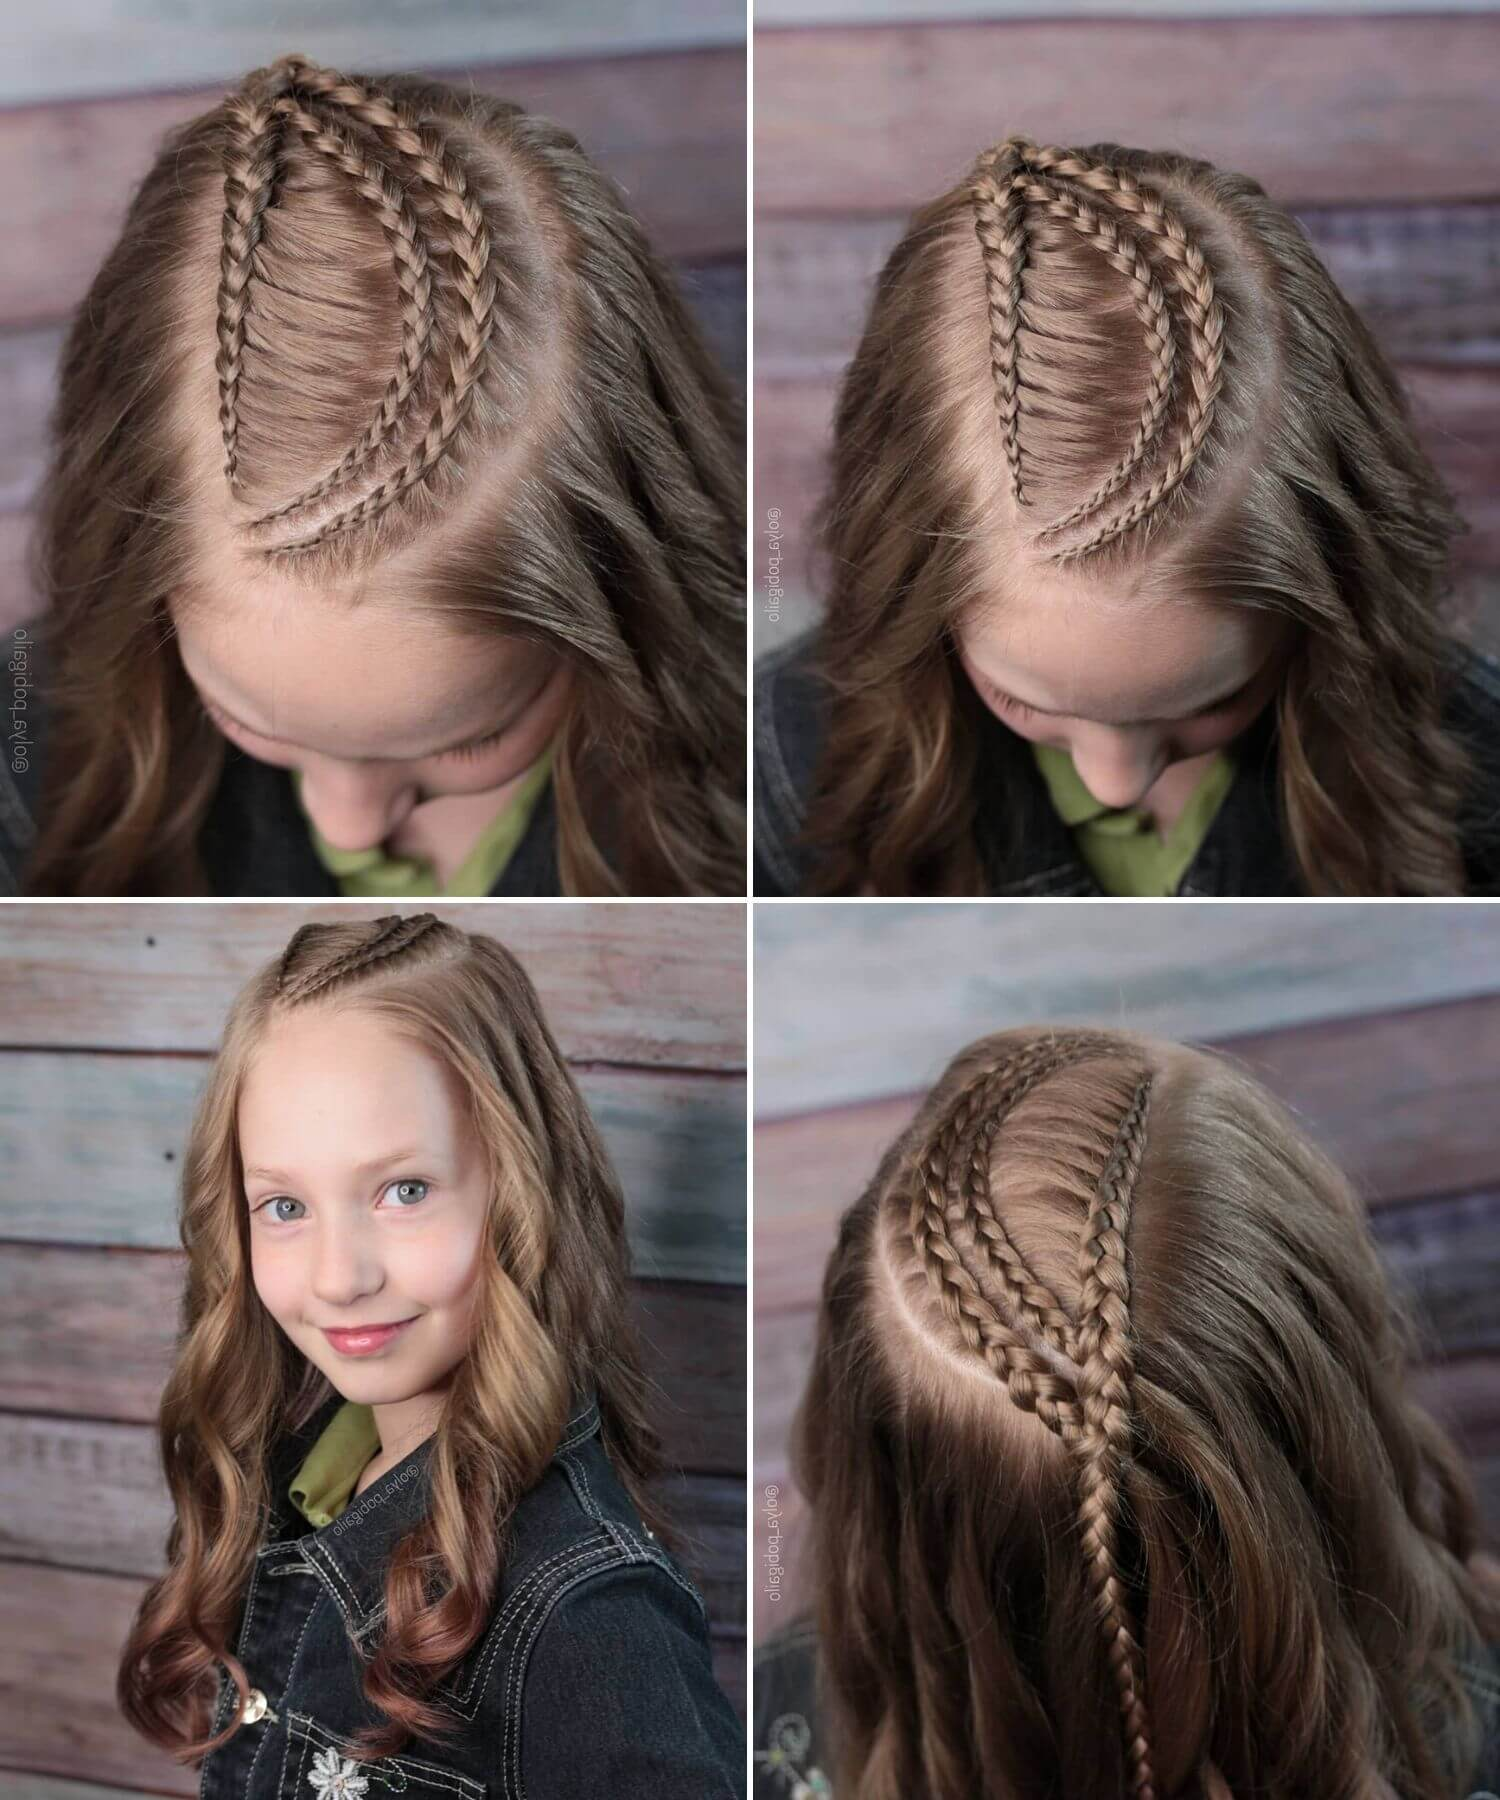 Braids for Kids with Long Naturally Curly Hair